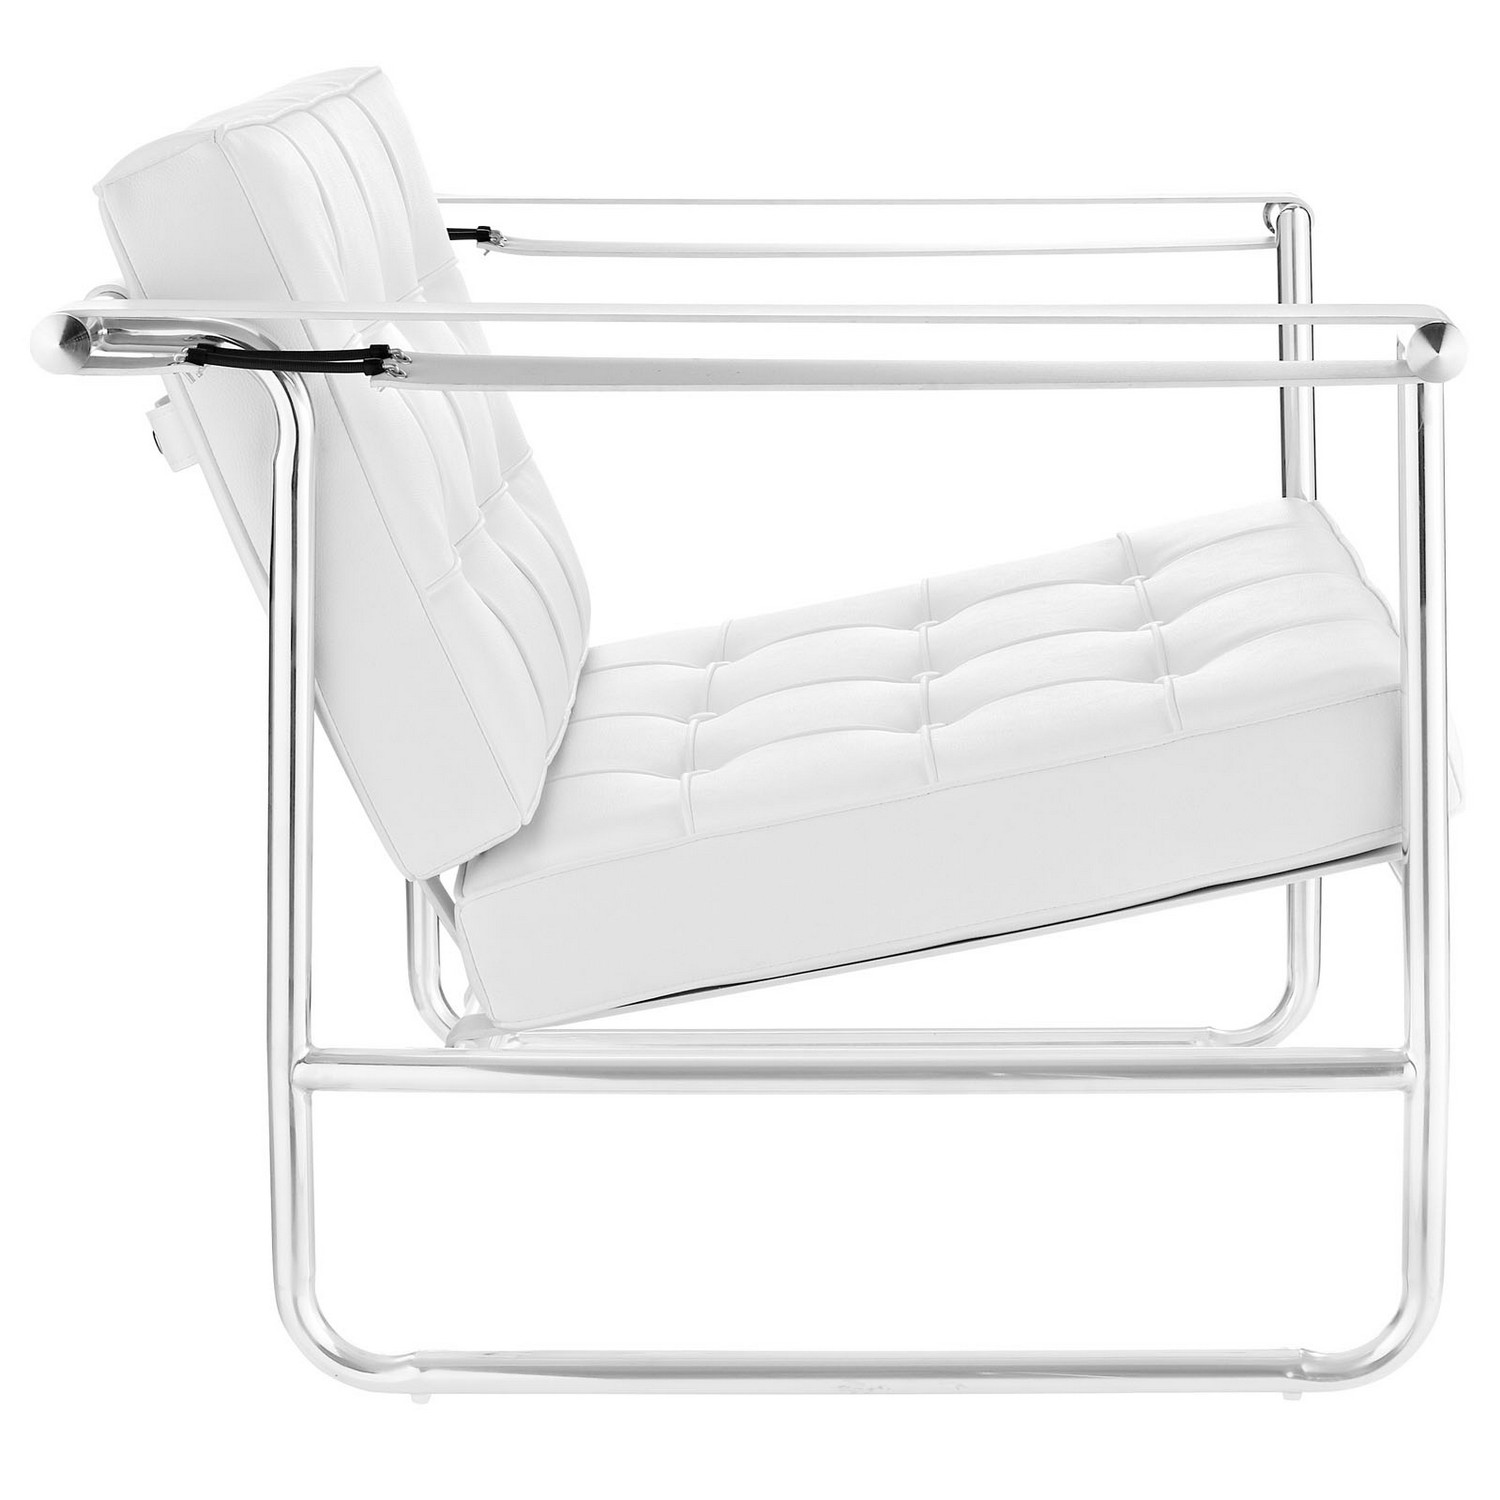 Modway Serene Stainless Steel Lounge Chair - White